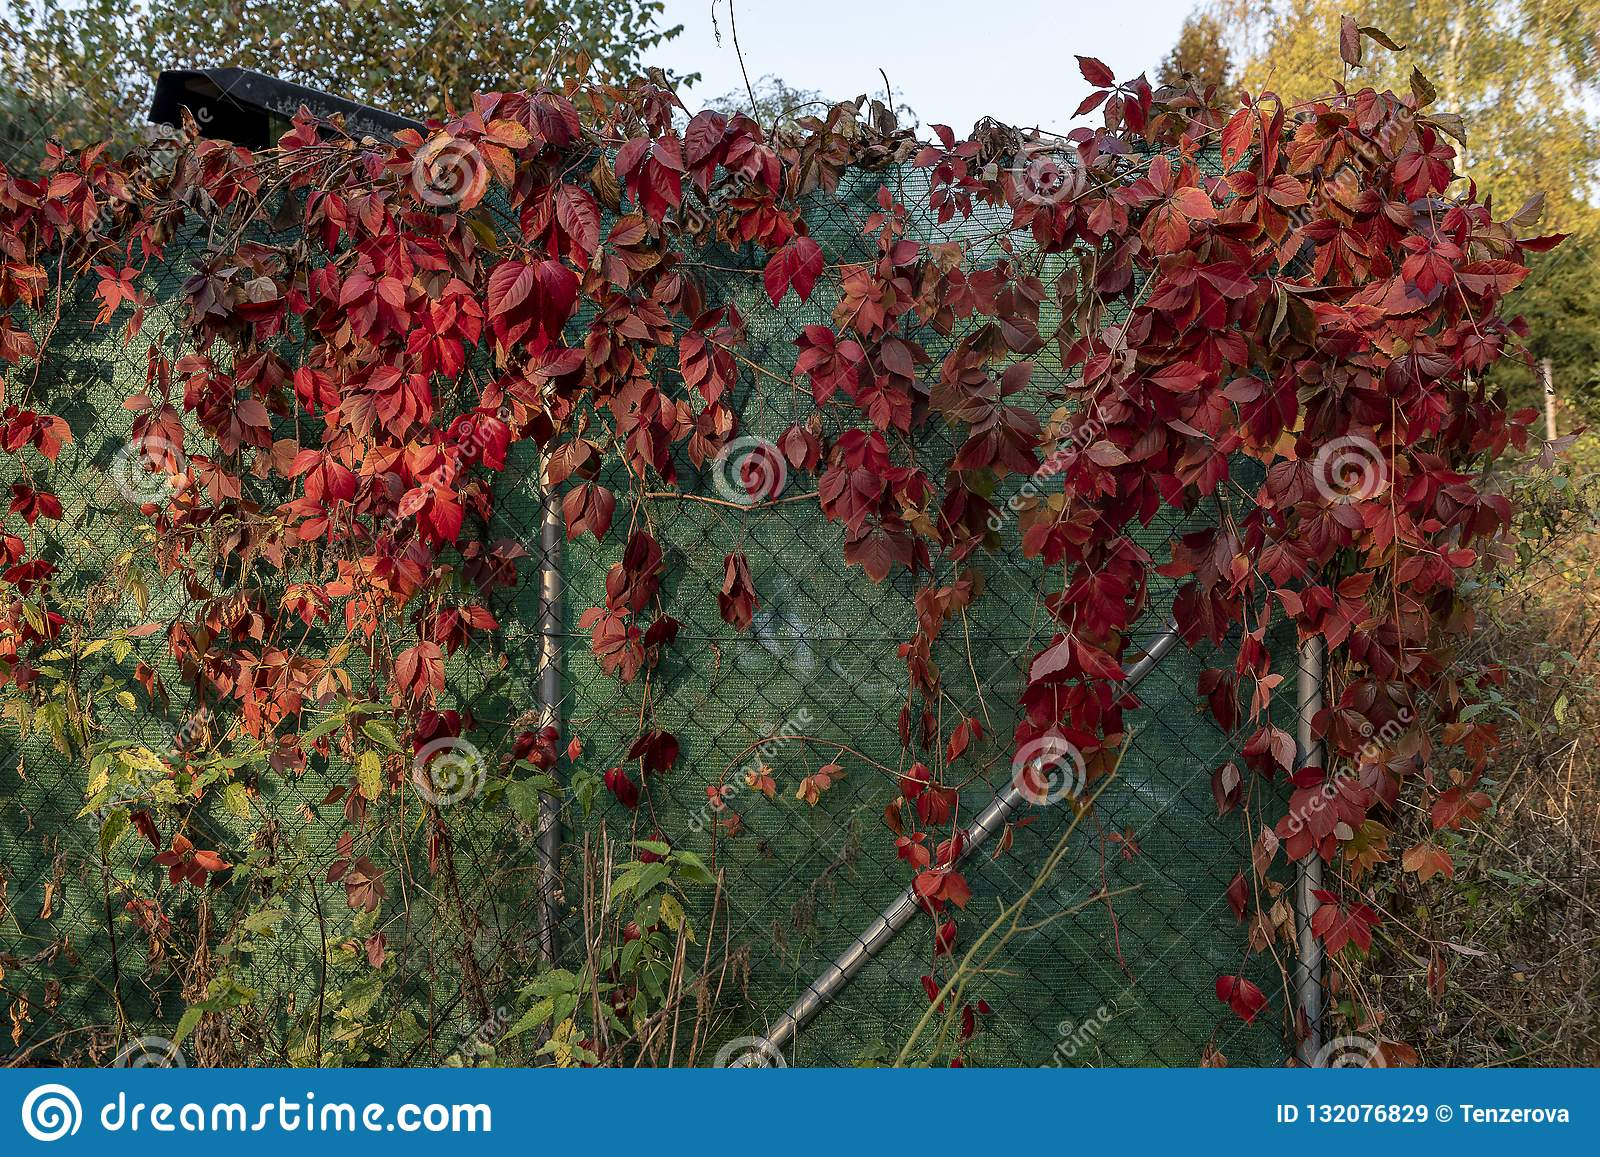 Fence Garden Covered With Red Flowers Climbing Plants Stock Image